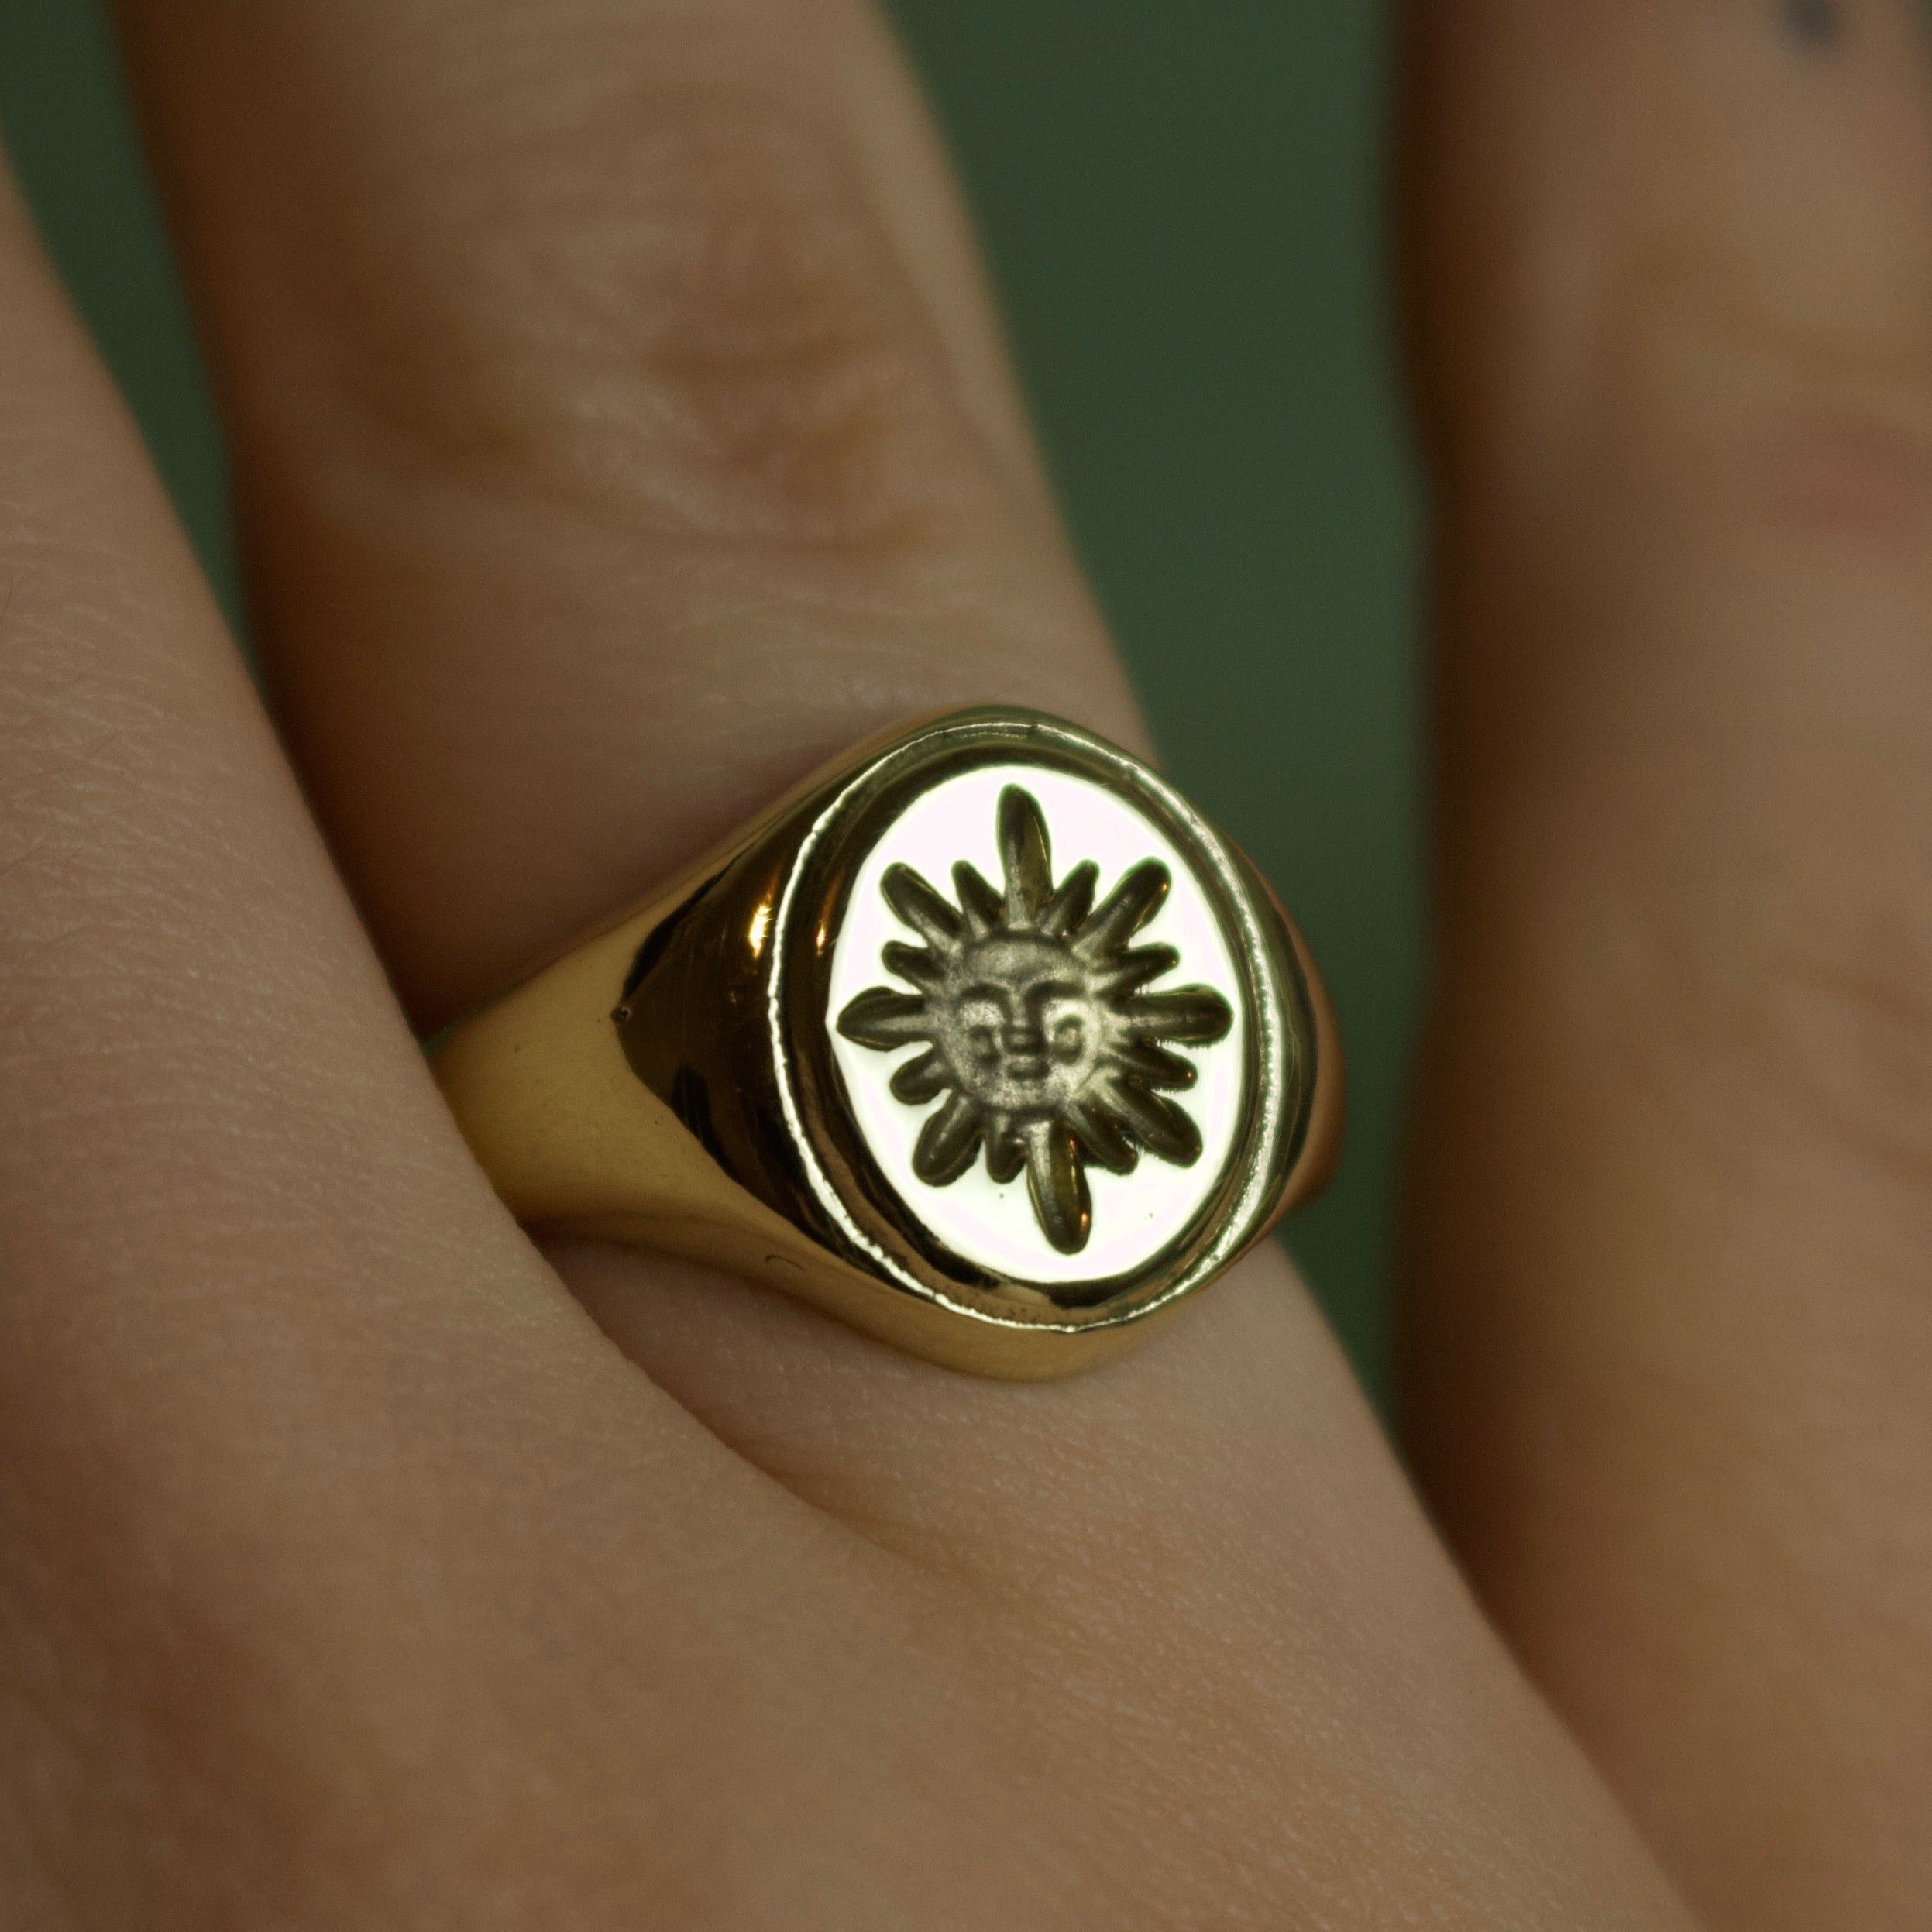 Sol Signet Ring - Brass, Silver or Gold - Ring The Serpents Club